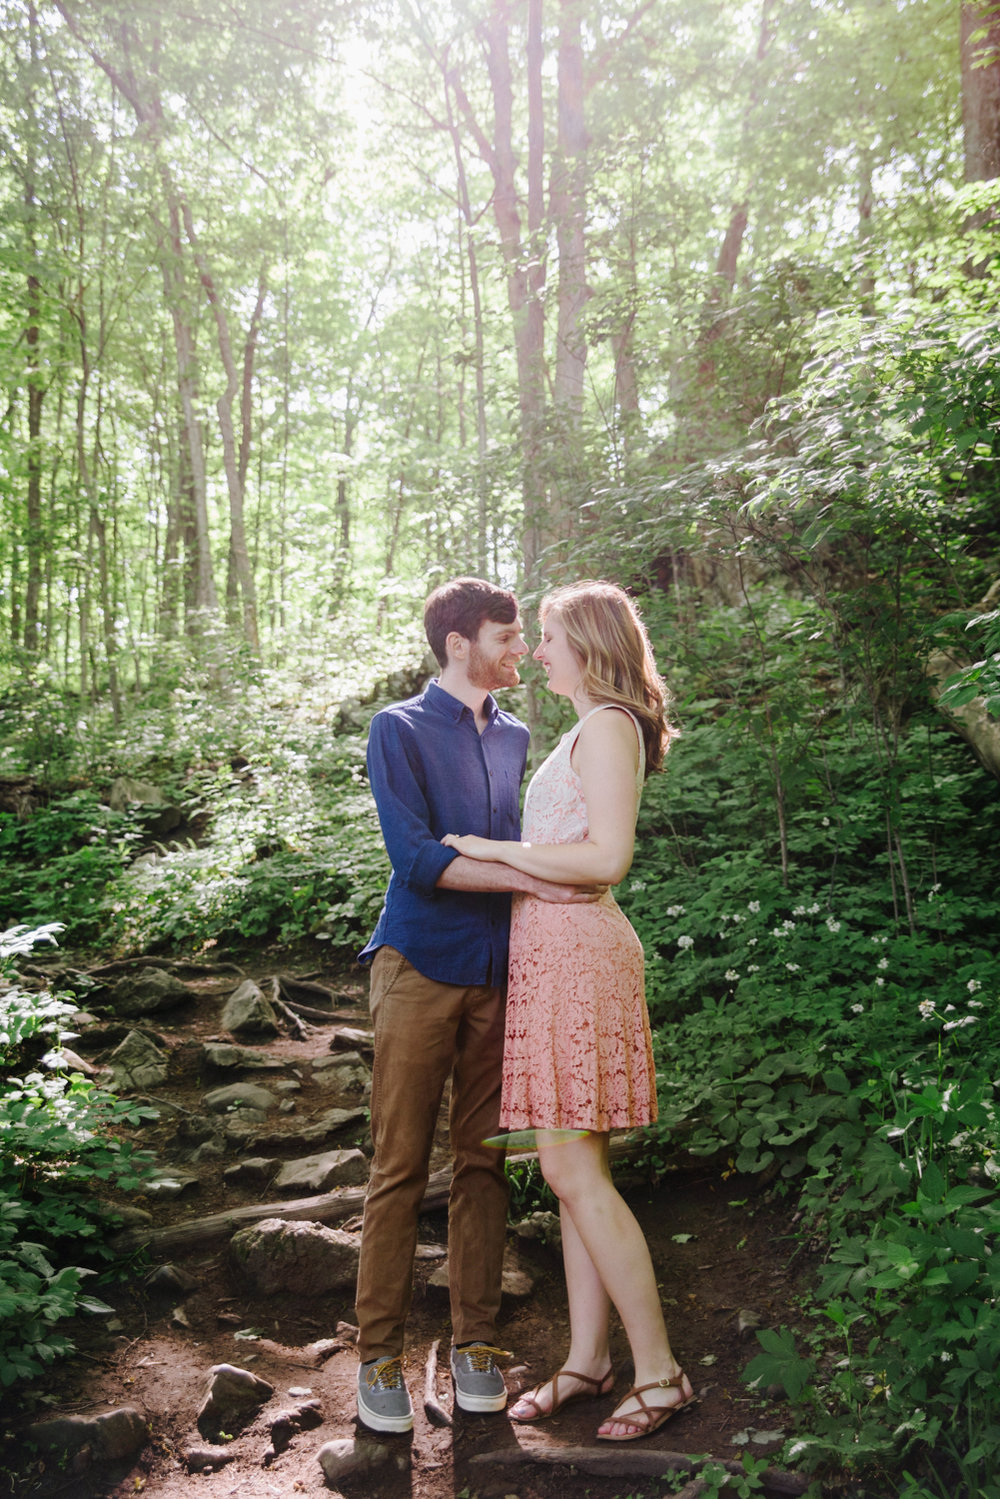 Chelsea+James- Stairway to Heaven Hiking Trail- Engagement Session- New Jersey- Olivia Christina Photo.JPG